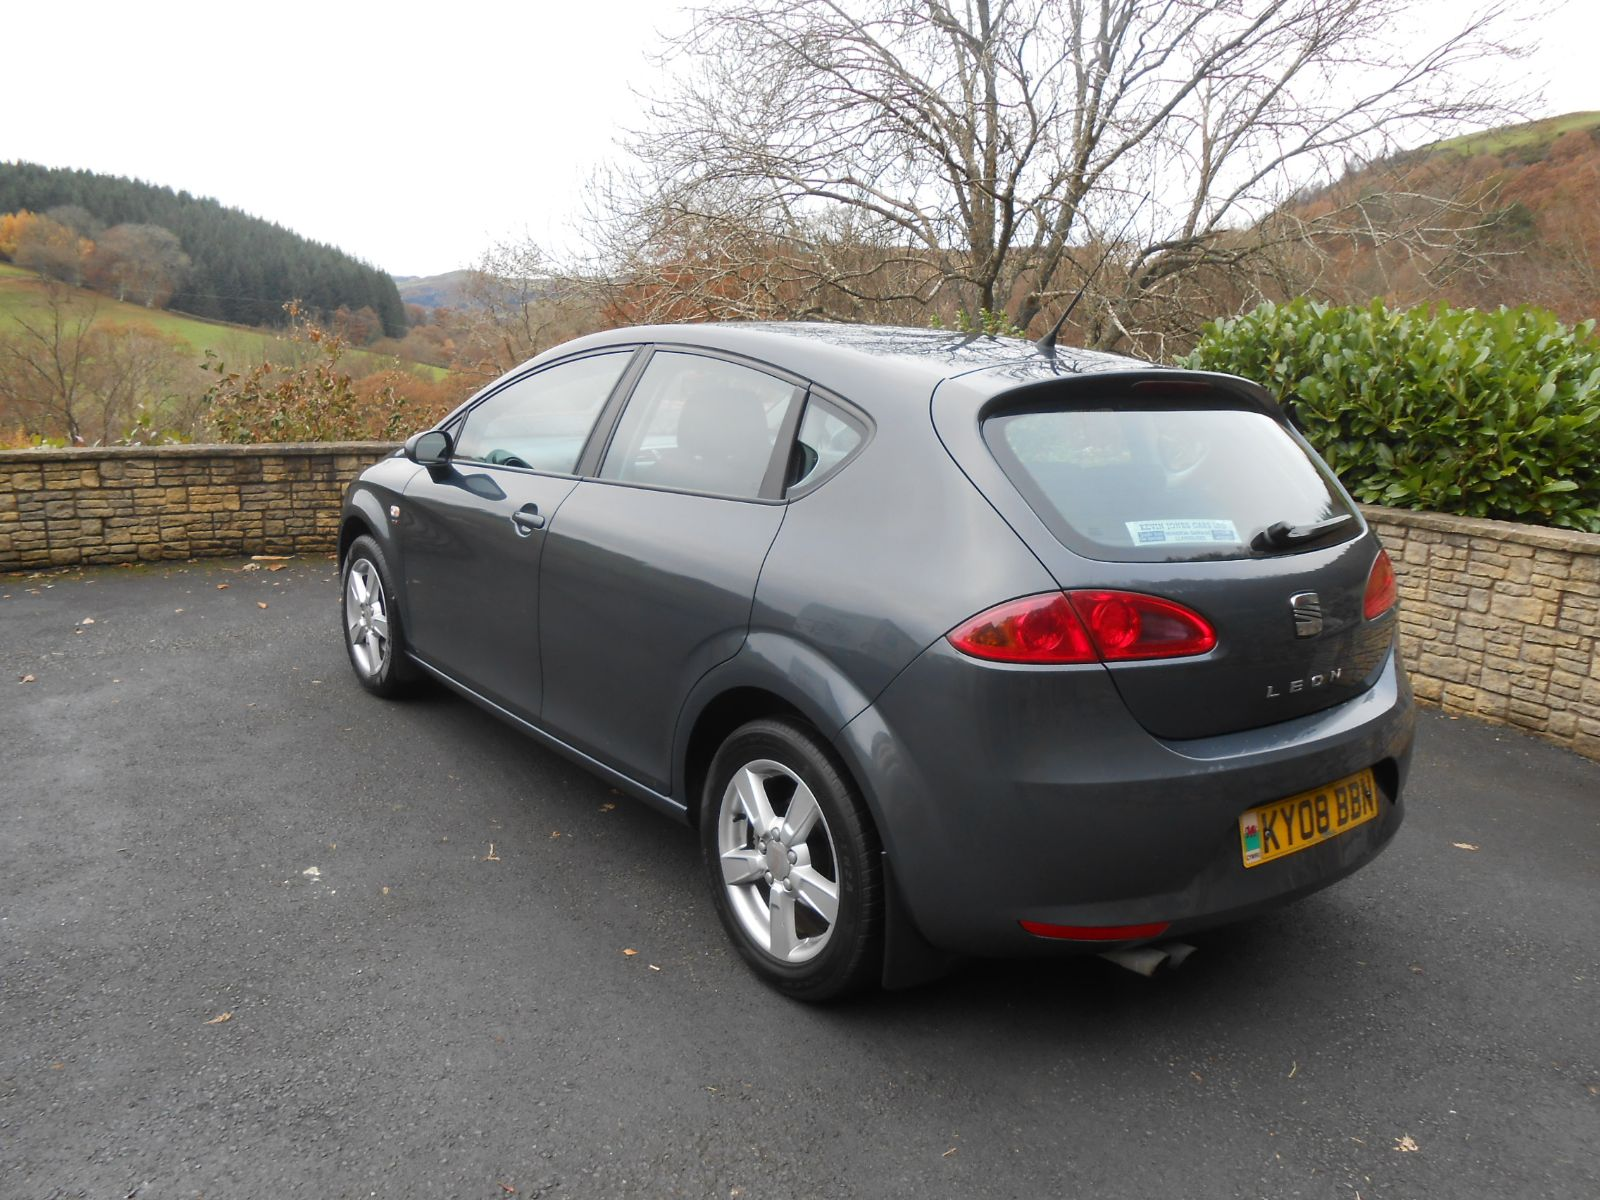 seat leon 2 0 tdi 140 reference sport car for sale llanidloes powys mid wales kevin jones cars. Black Bedroom Furniture Sets. Home Design Ideas